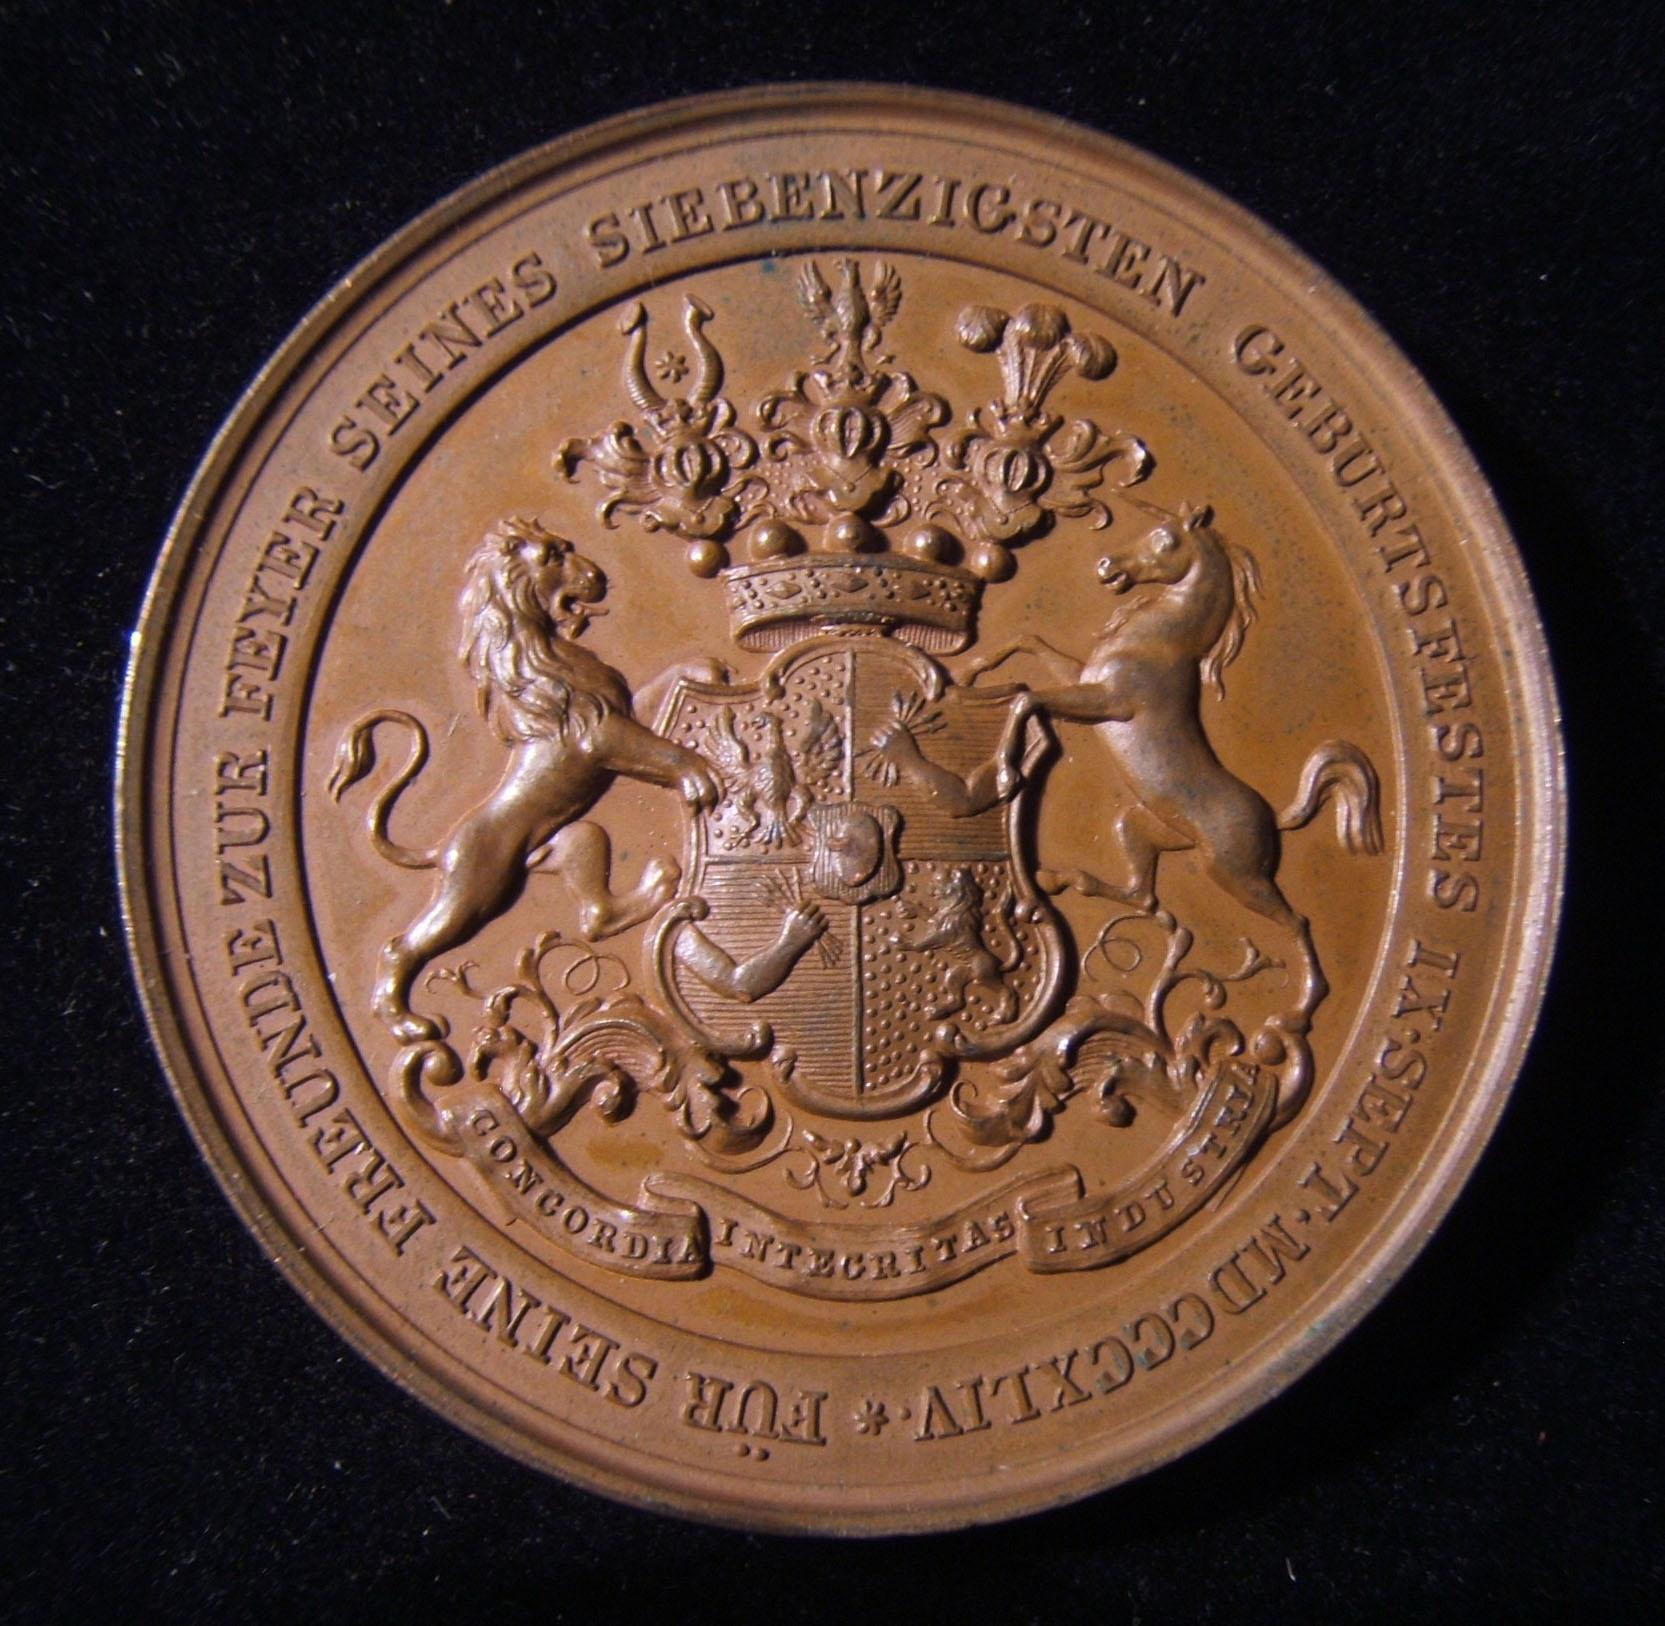 Austria-Hungary > Vienna: Salomon Mayer Rothschild 70th birthday bronze medal, 1844; by Konrad Lange; weight: 64.6g; size: 49mm.Obv.: family's coat of arms; leg.